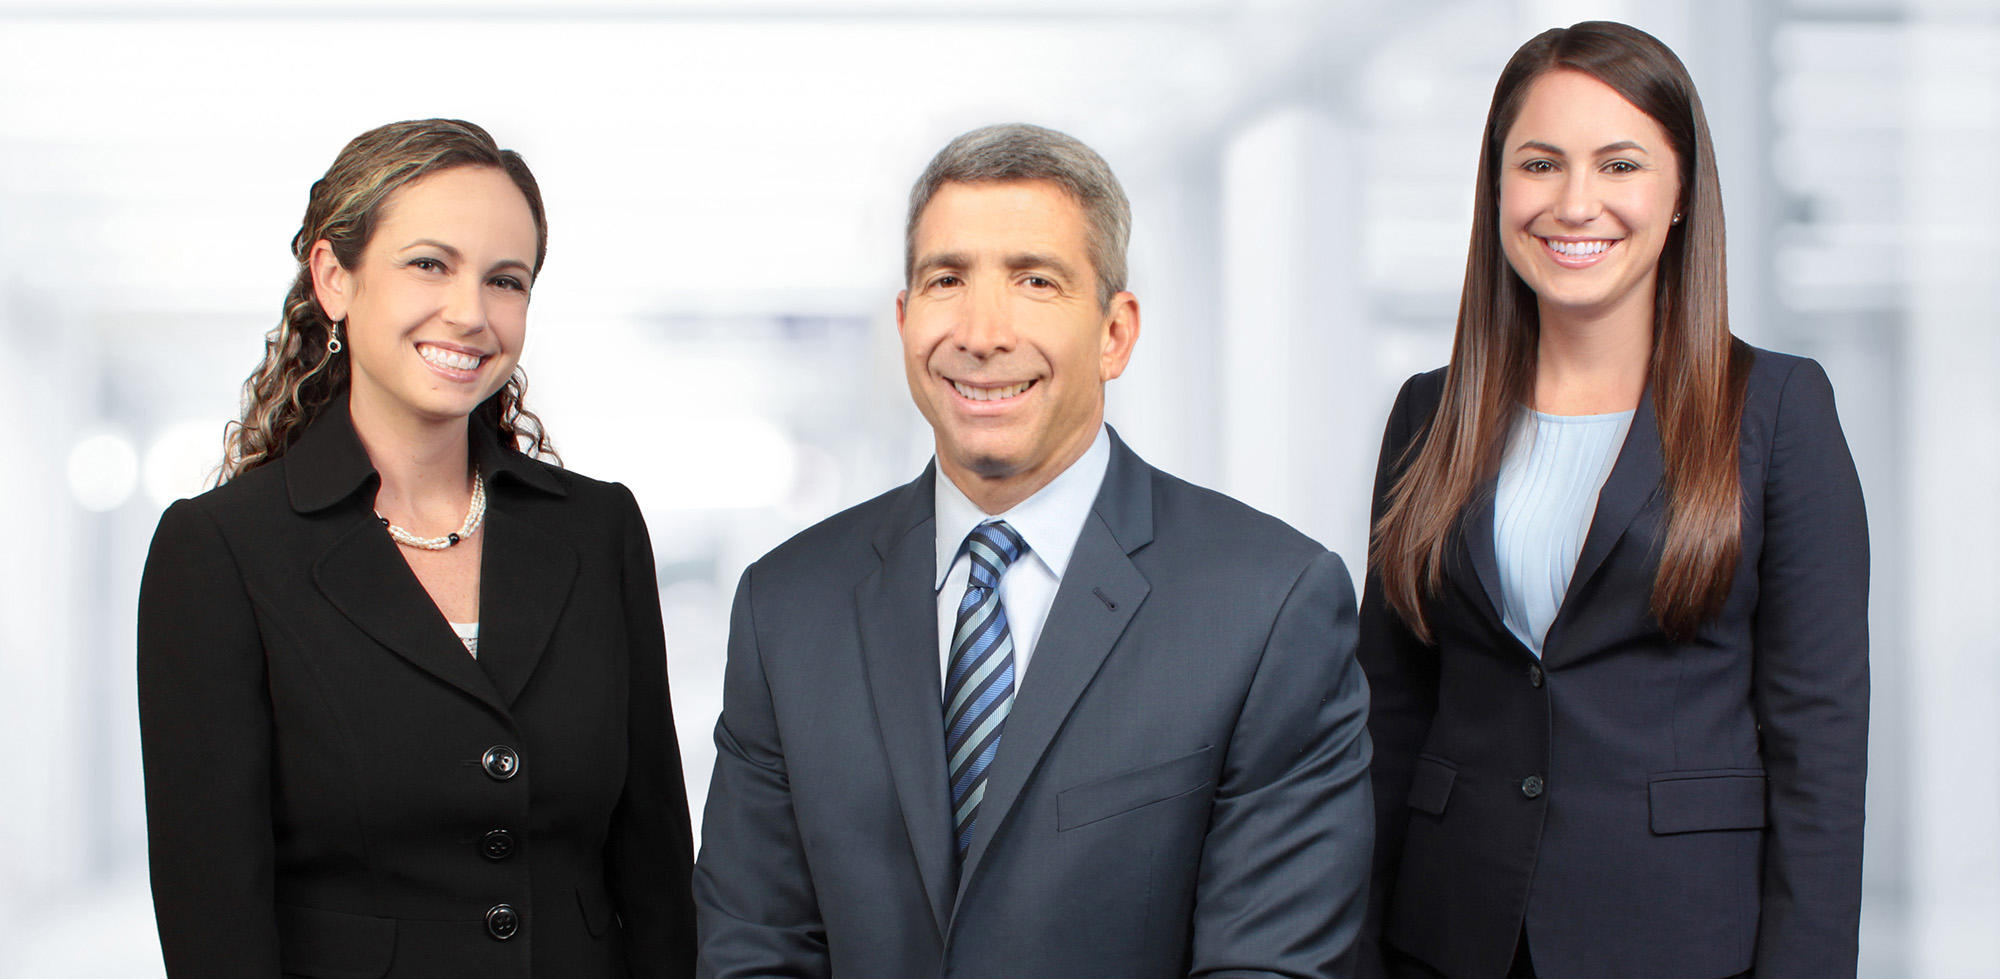 Rosenthal Law Group image 3